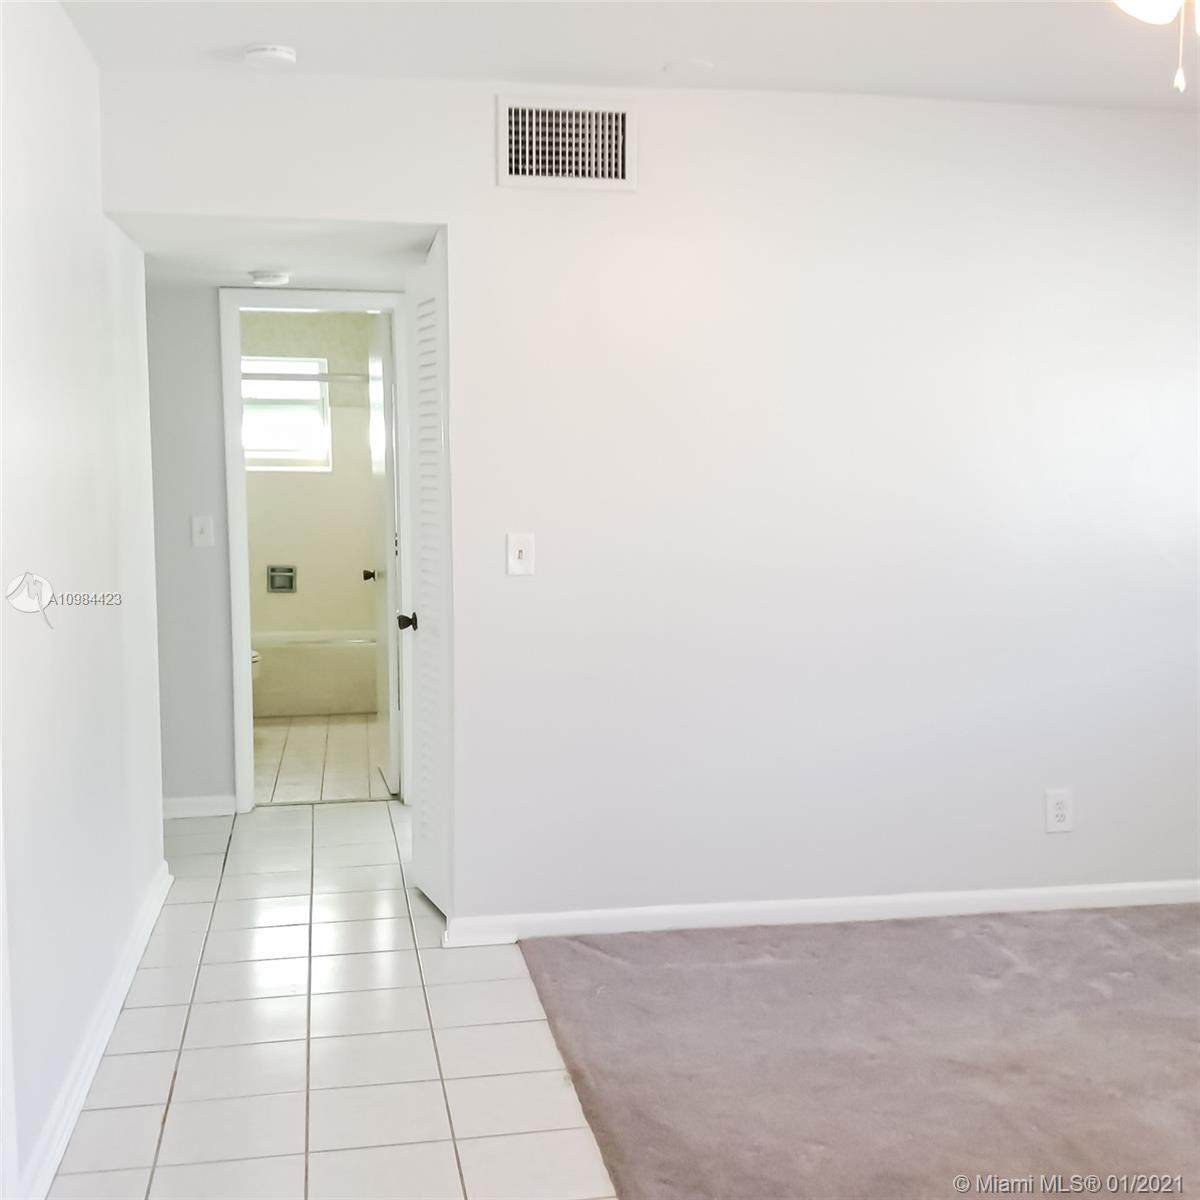 1100 Atlantic Shores Blvd - Photo 1